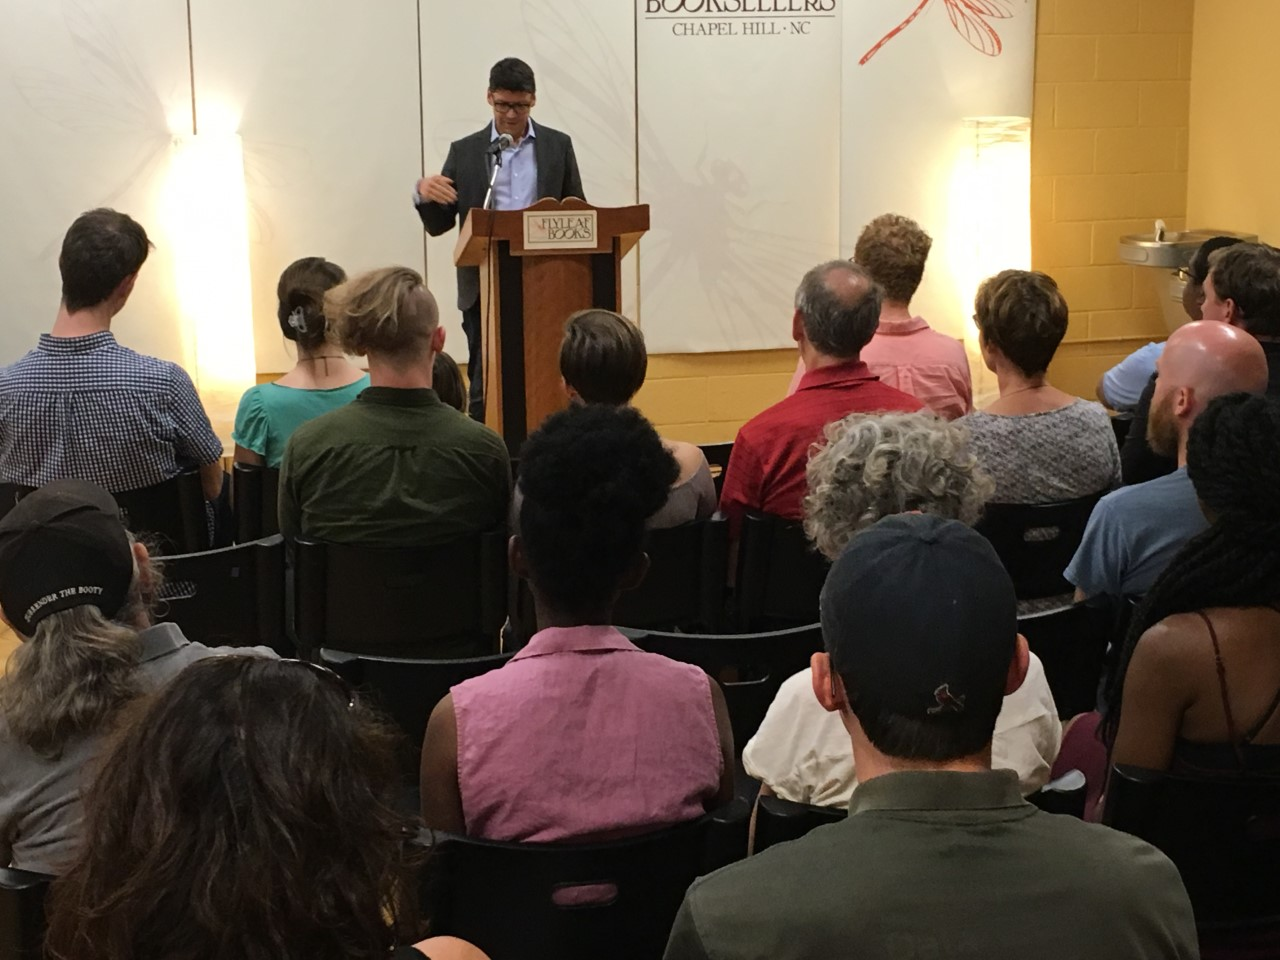 June 29, 2018 in Chapel Hill at Flyleaf Books. Reading from  Topiary  and  Another City;  Joe Fletcher read from his debut book  The Hatch